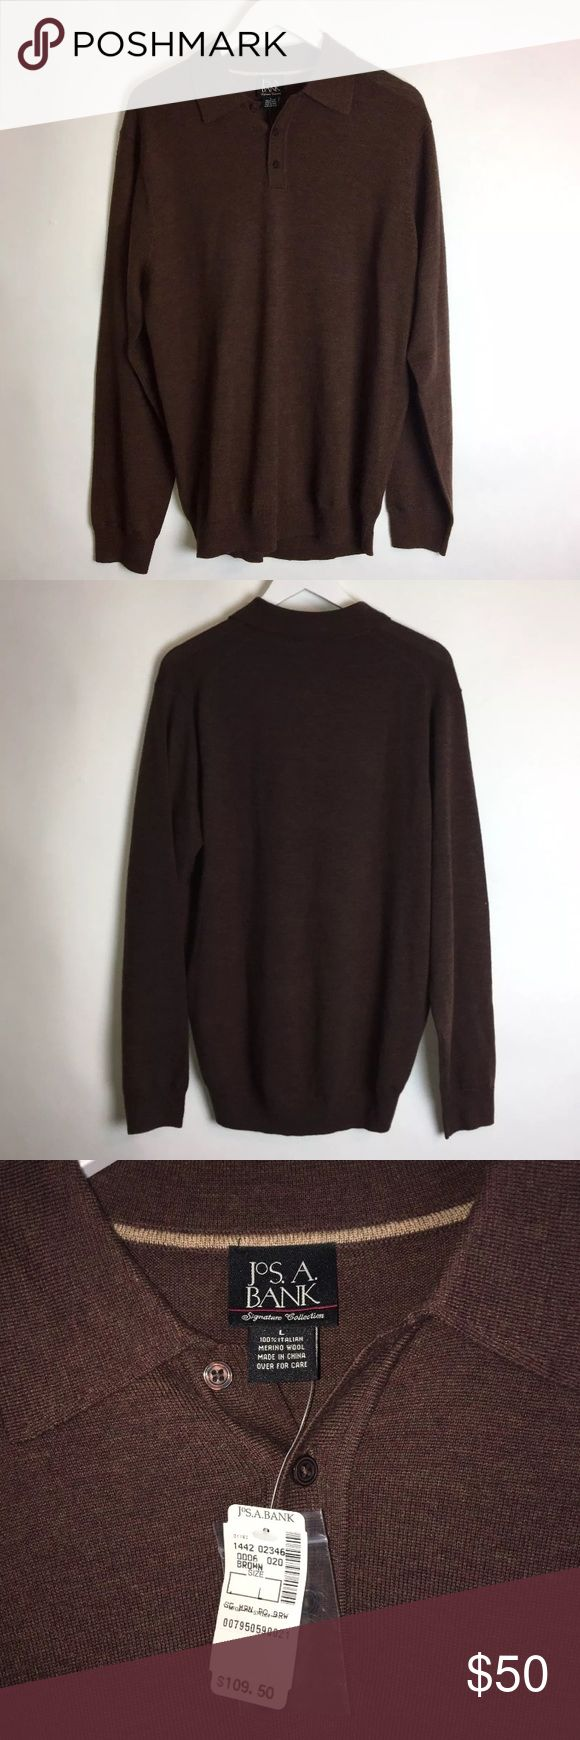 NWT Jos. A. Bank Merino Wool Polo Sweater Shirt Brand: Jos.A.BANK Item name: Men's Long Sleeve Polo Shirt Sweater Retail price $109  		 Color: Brown Condition: Brand new w/ tags. Size: Men's Large Measurements:  Pit to Pit - 22 inches Shoulder to bottom - 29 inches Jos. A. Bank Shirts Polos